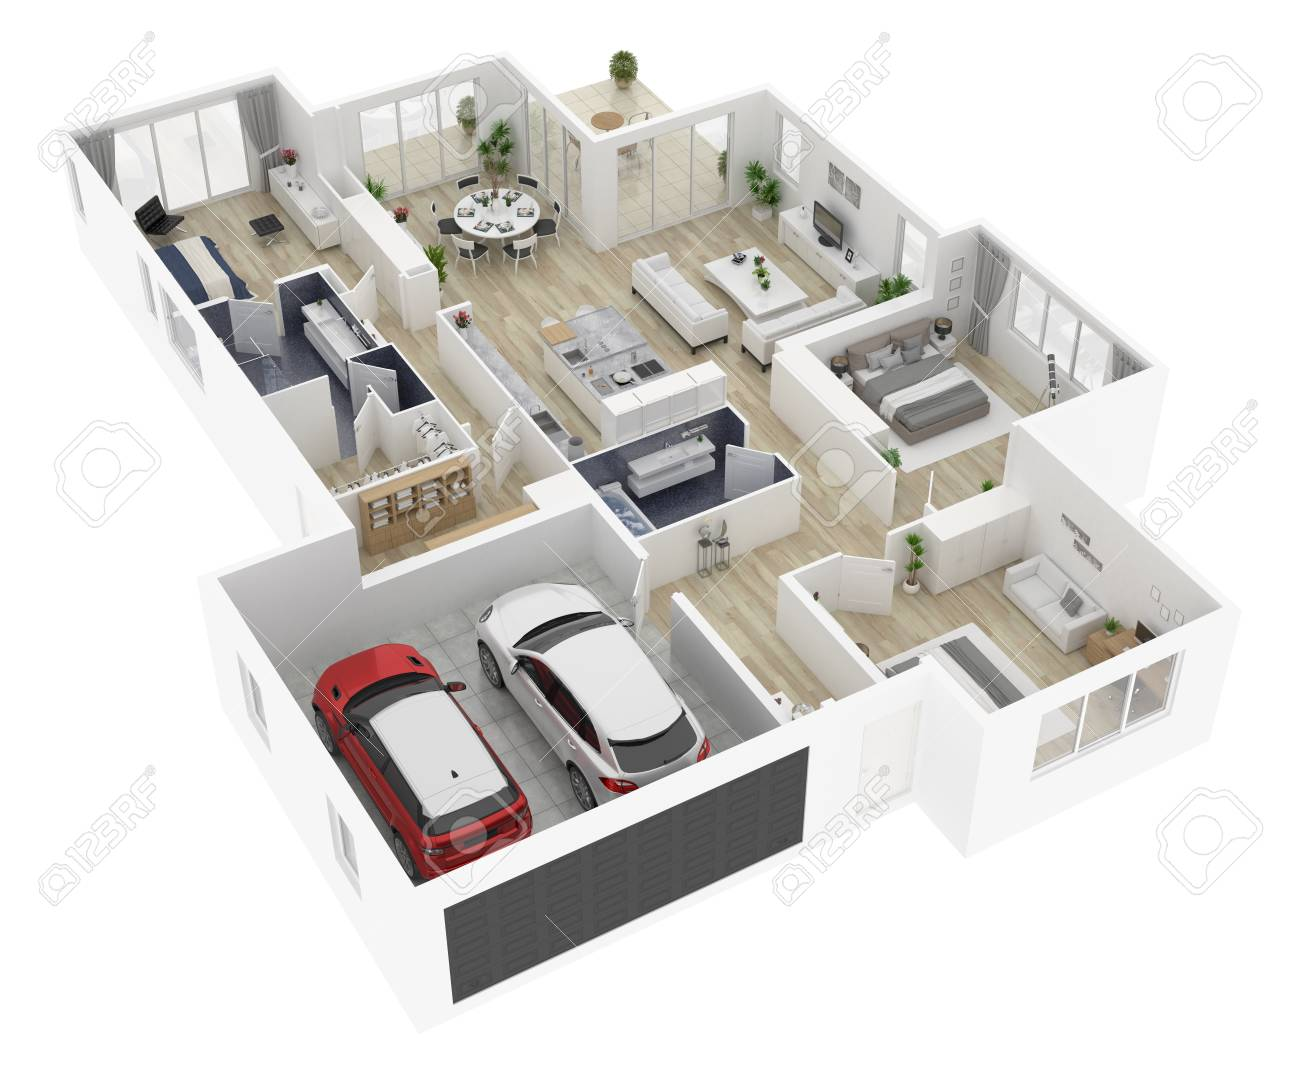 Floor Plan Of A House Top View 3d Illustration Open Concept Stock